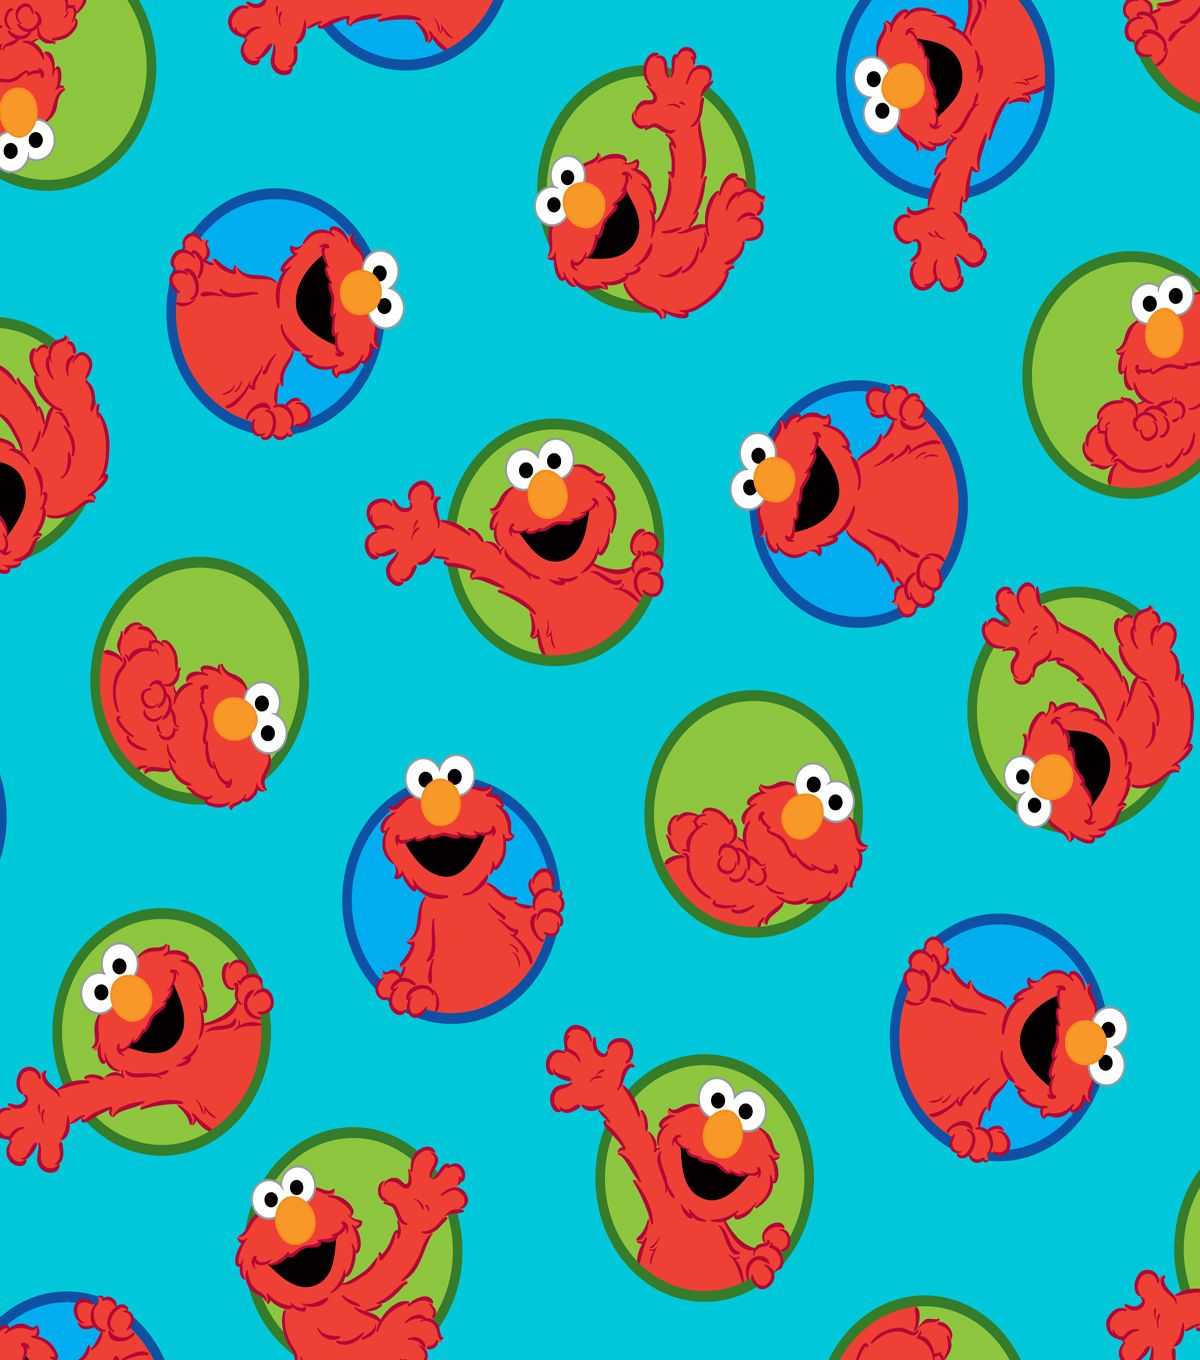 Sesame street elmo cotton fabric my fav fabric picks and extras sesame street elmo cotton fabric bankloansurffo Gallery